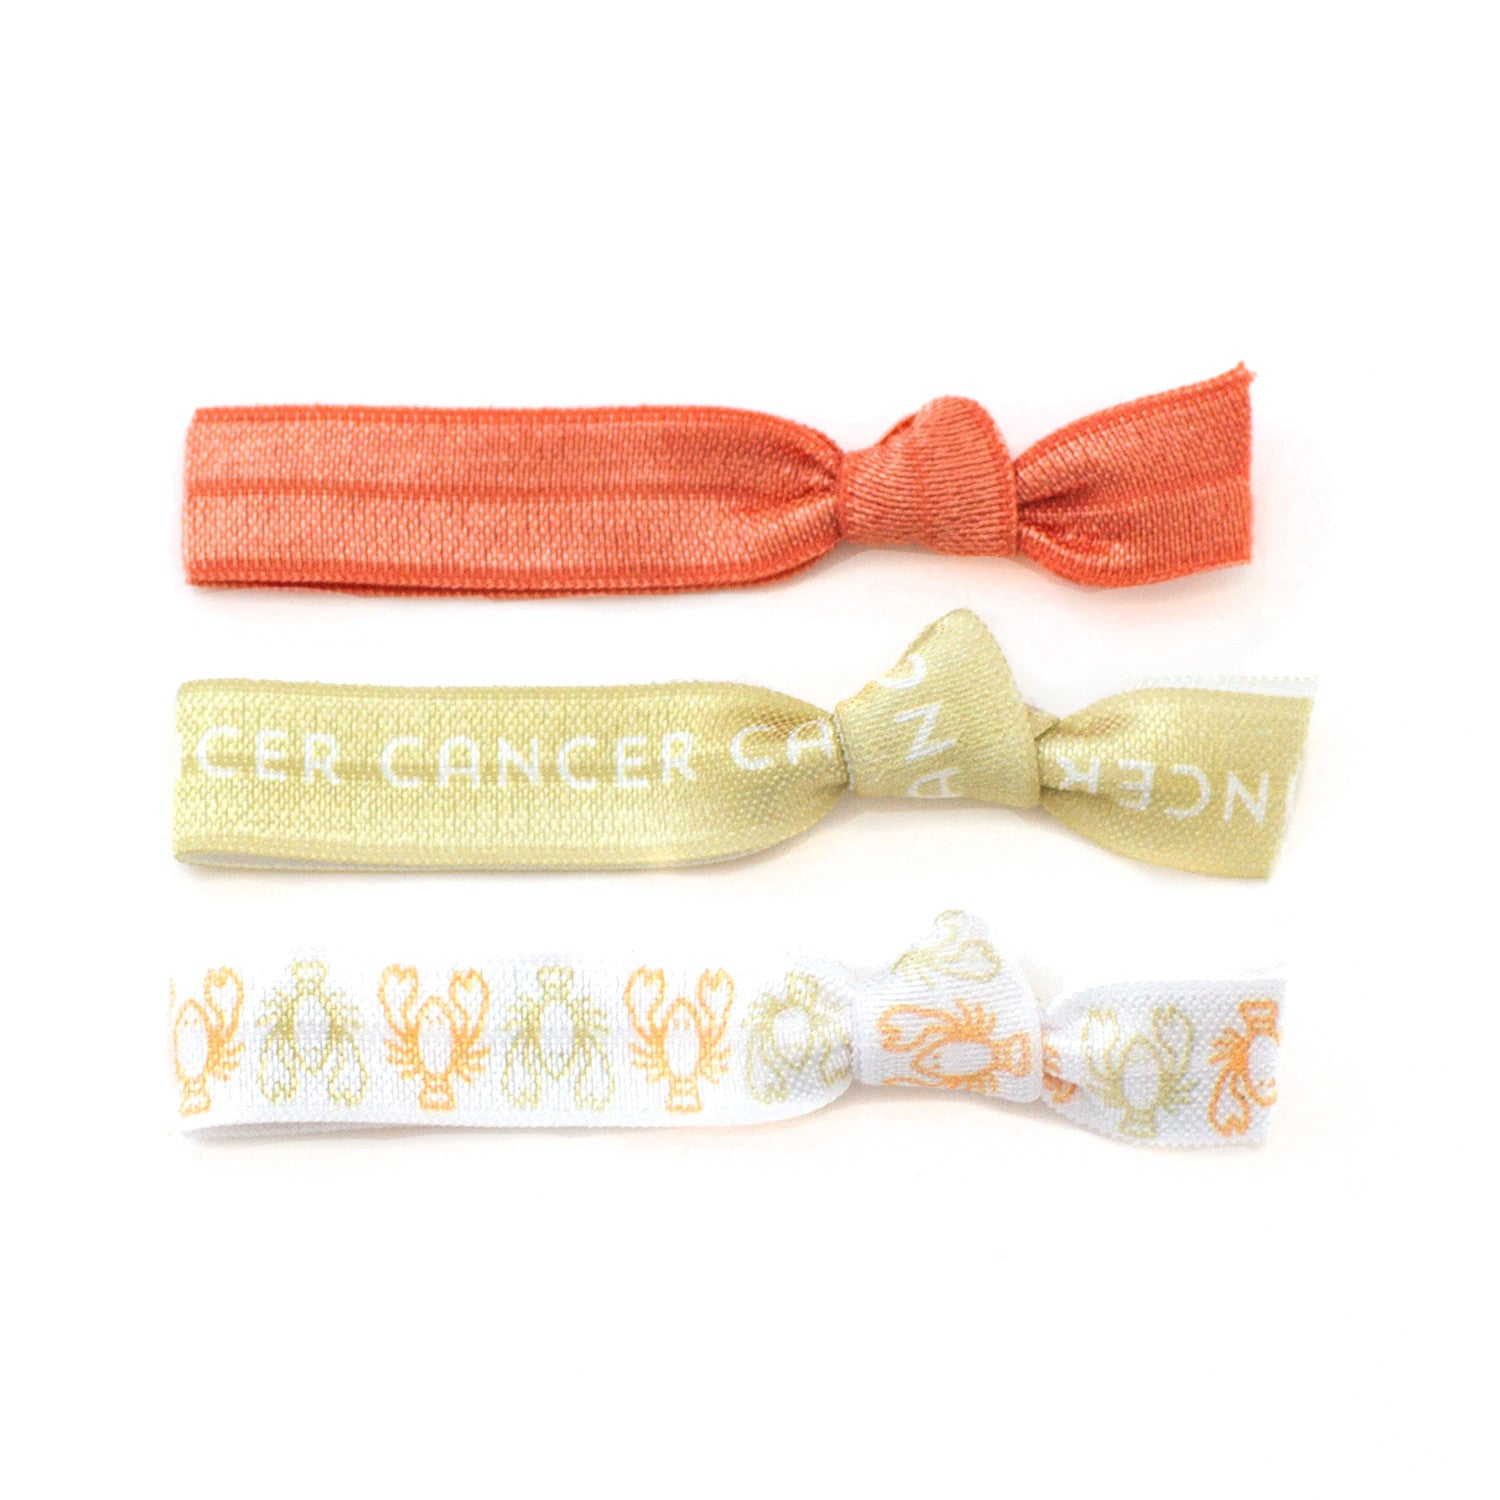 Cancer Ponytail Holders Hair Ties